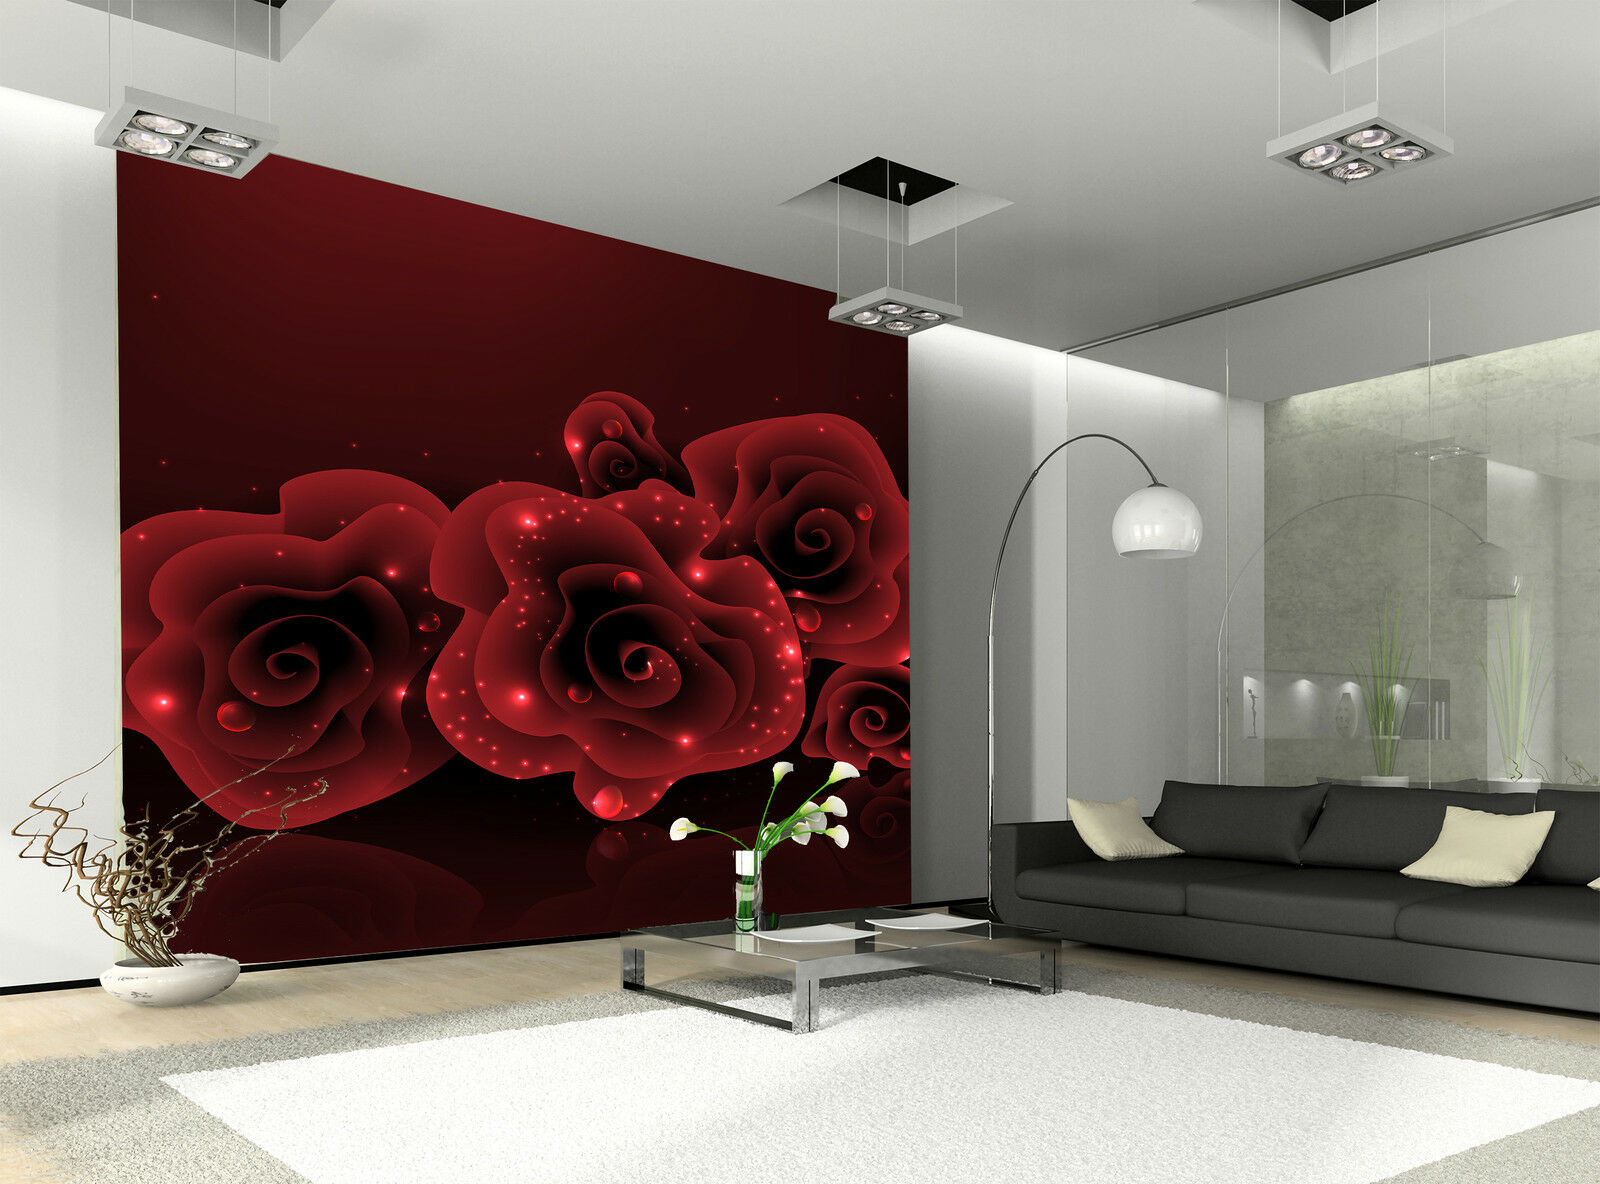 Stylish ROT Rose Wall Mural Photo Wallpaper GIANT DECOR Paper Poster Free Paste